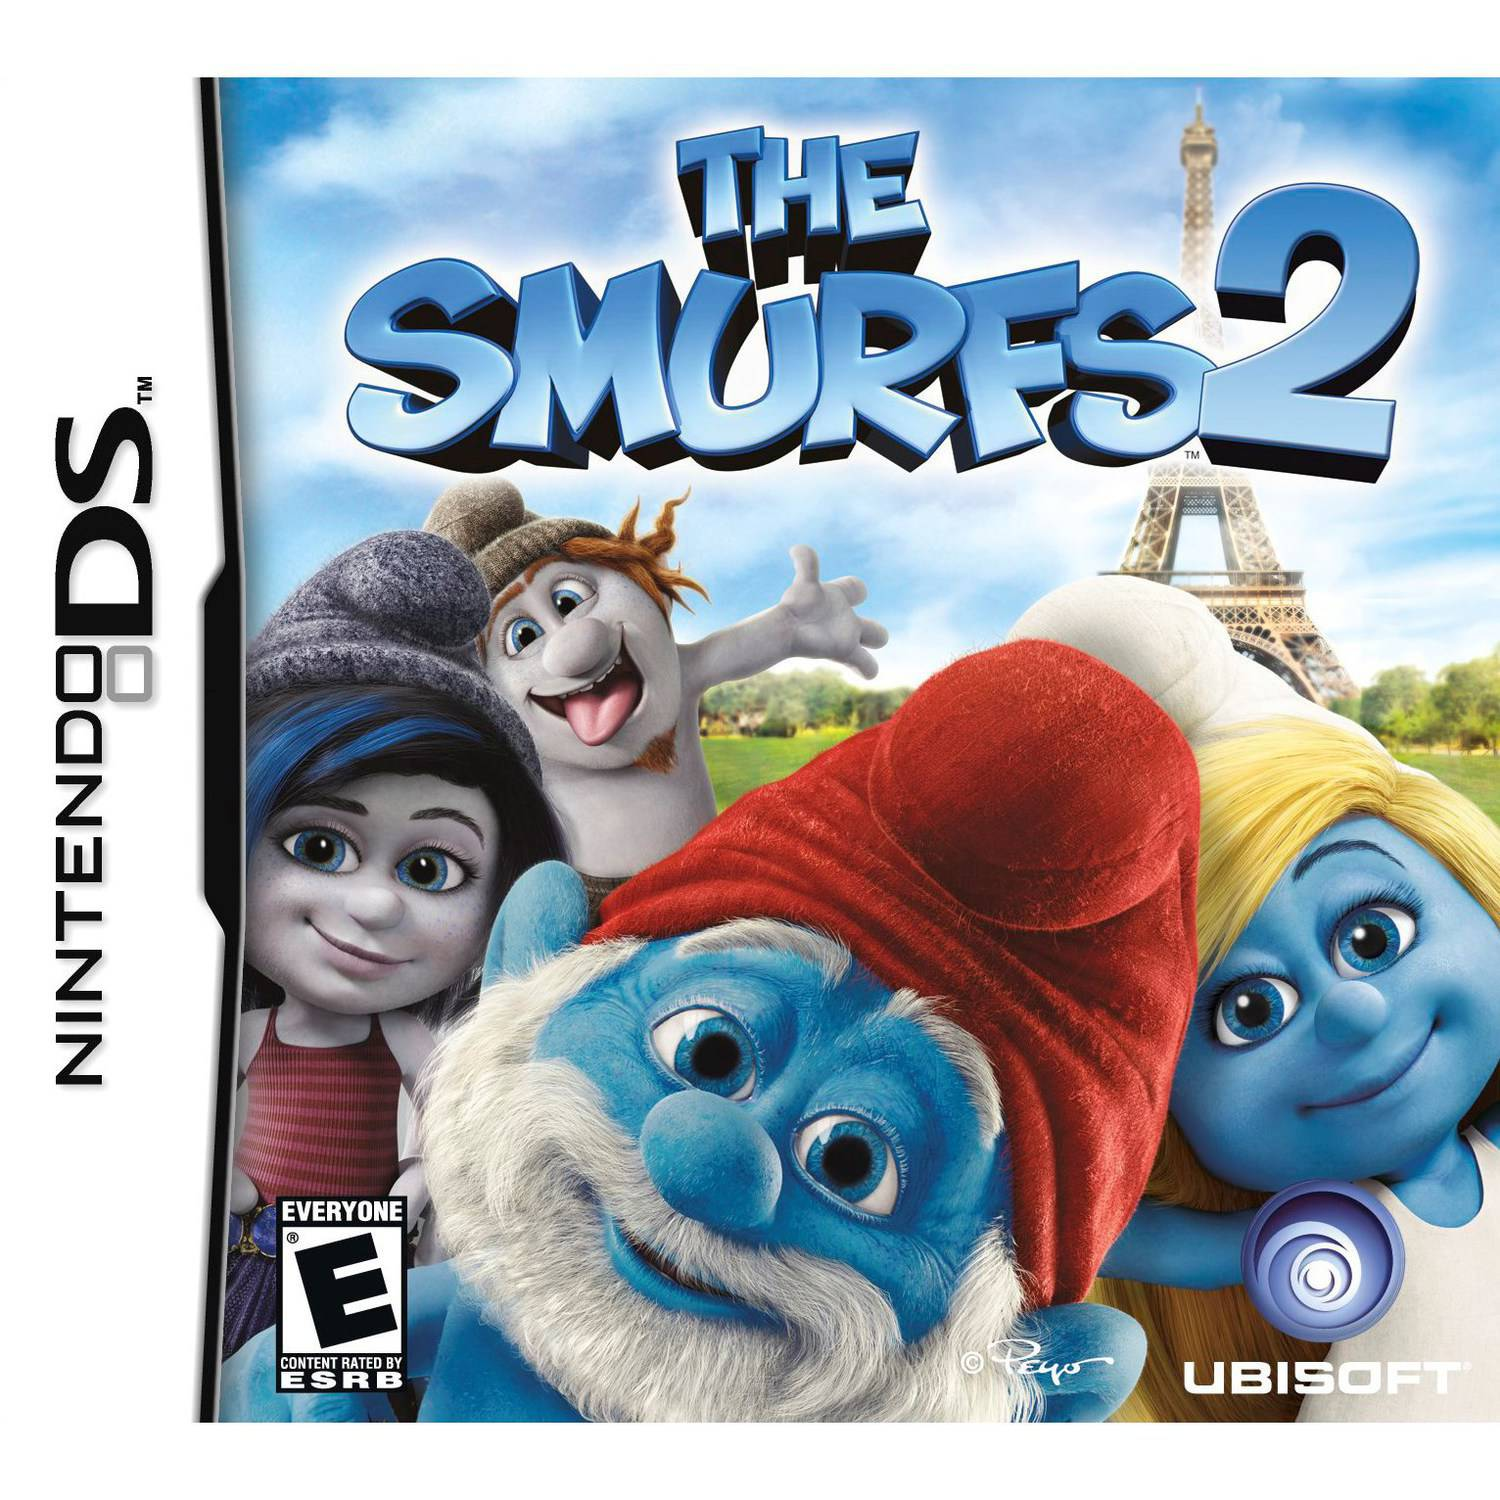 The Smurfs 2, Ubisoft, Nintendo DS, 008888168140